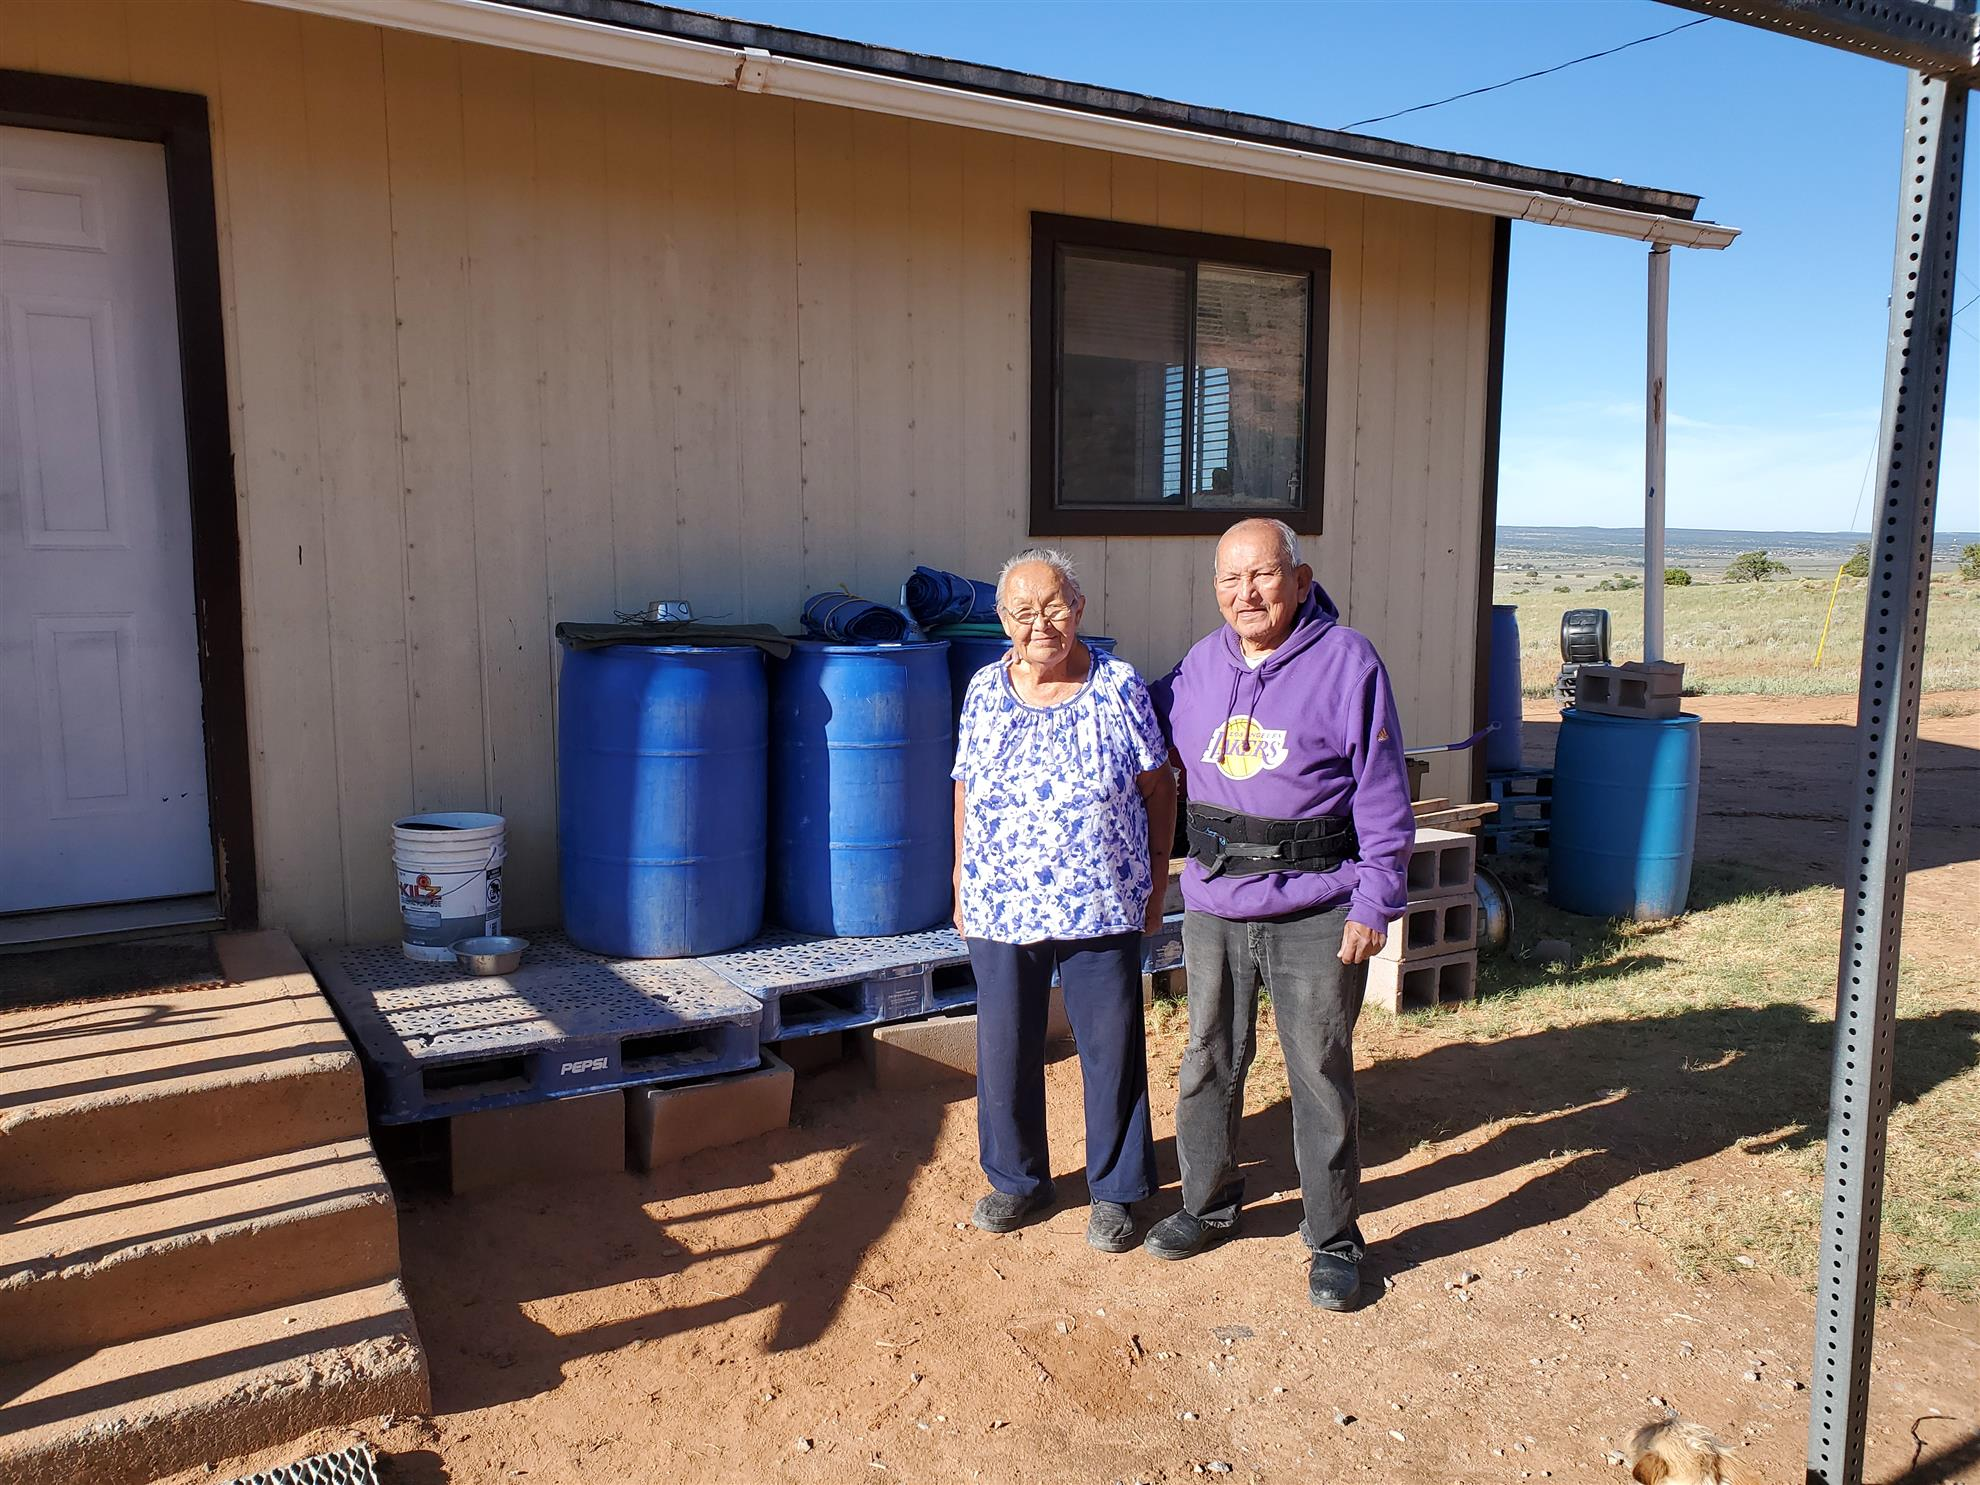 The Jim's: Ida 77 yrs. Joe 84 yrs.  Have lived in home without inside running water and toilet since the early 70's.  Do have electricity. Water stored in three 50-gallon barrels that needs to last one month unless their son brings water hauled in a pick-up truck. After installation: 1,200-gallons and refilled by water truck